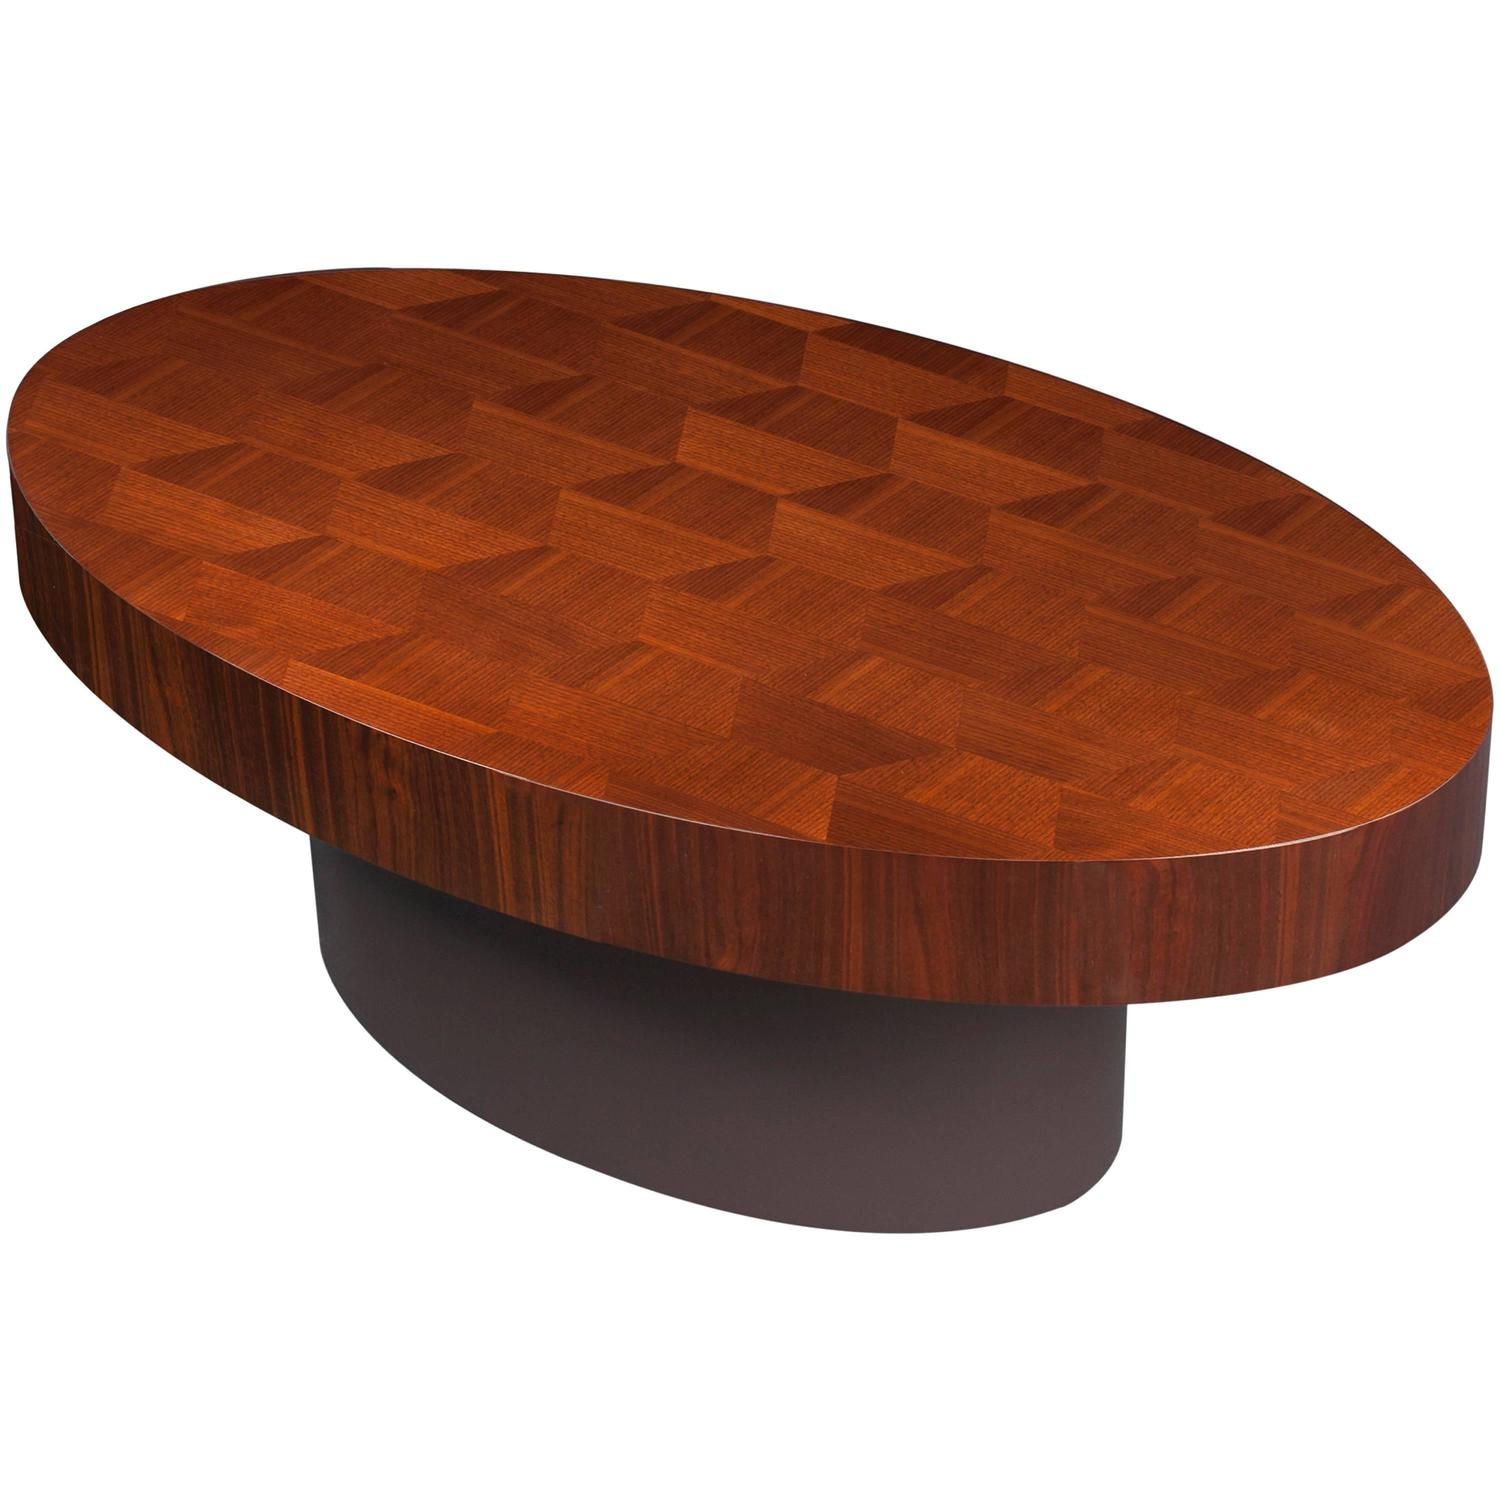 Contemporary Oval Chequerboard Walnut Wood Coffee Table From France For Sale At 1stdibs